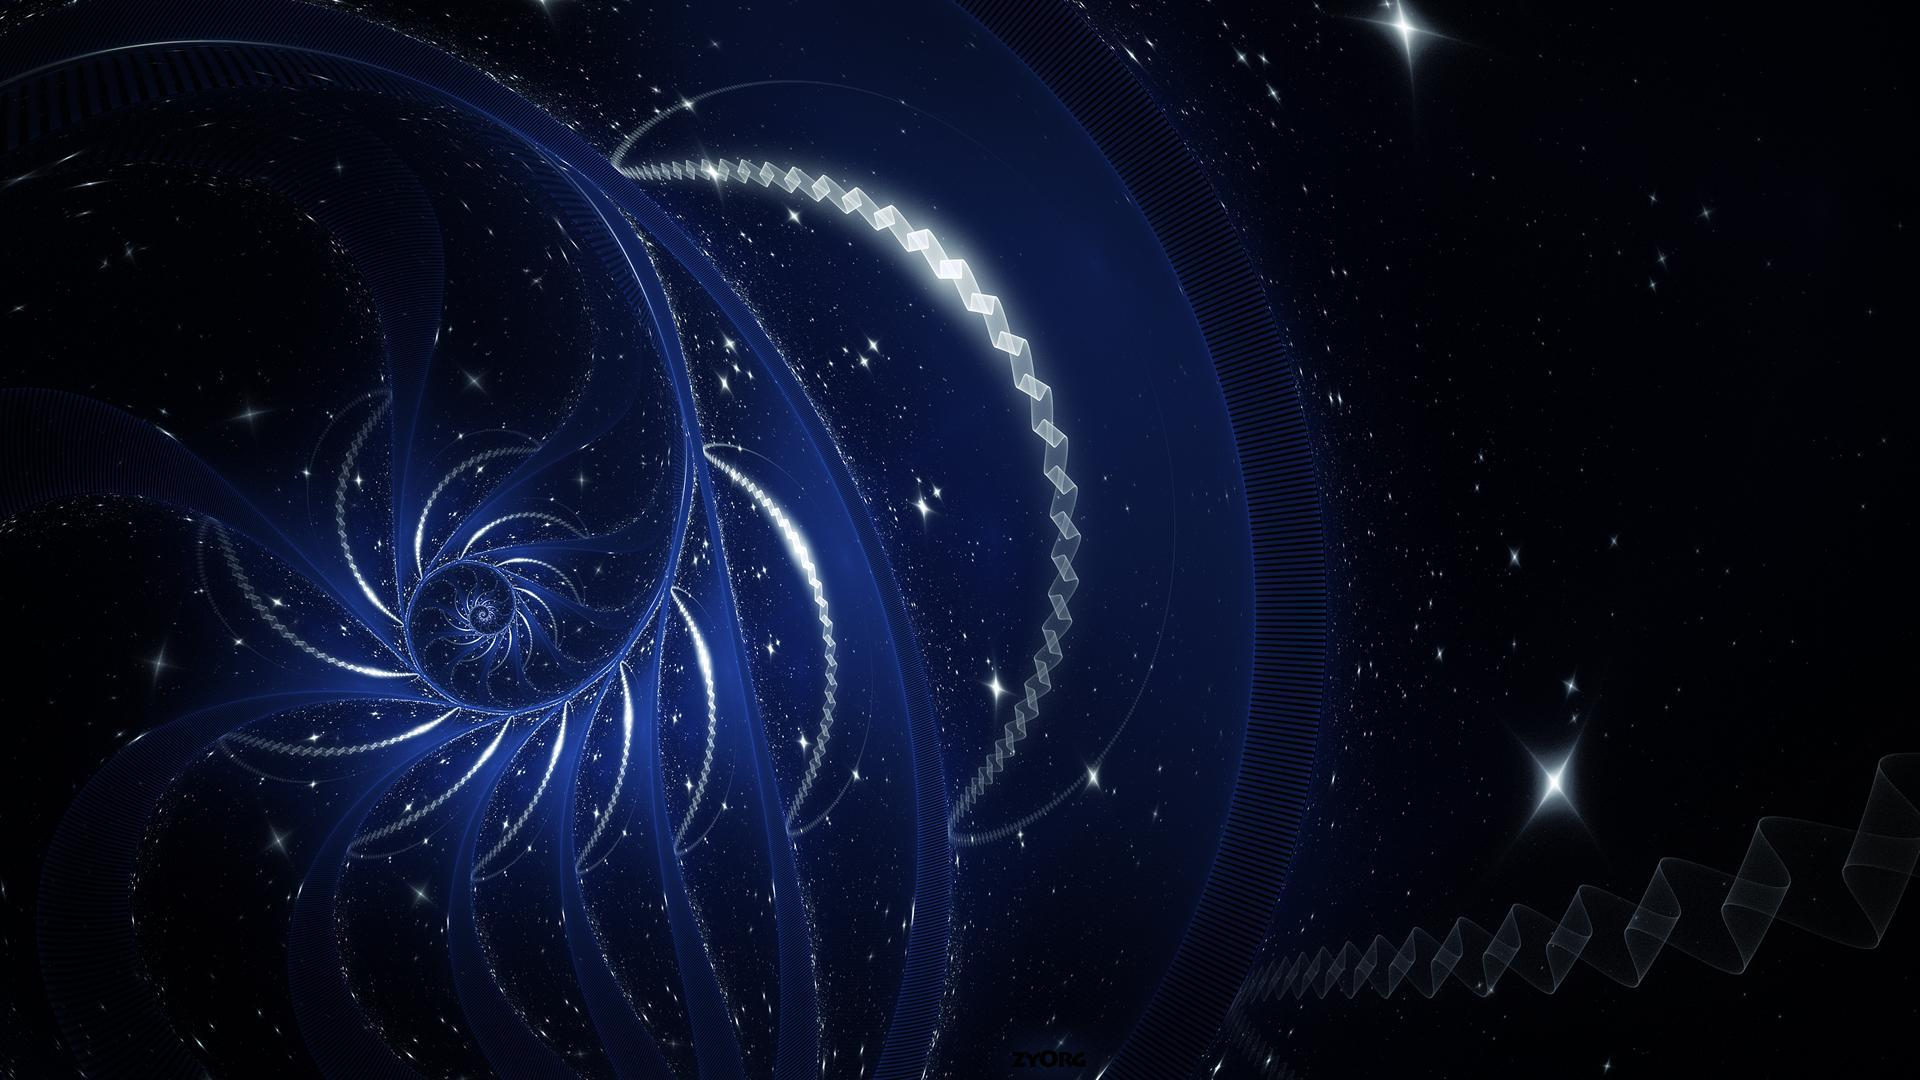 Starry Night Backgrounds - Wallpaper Cave